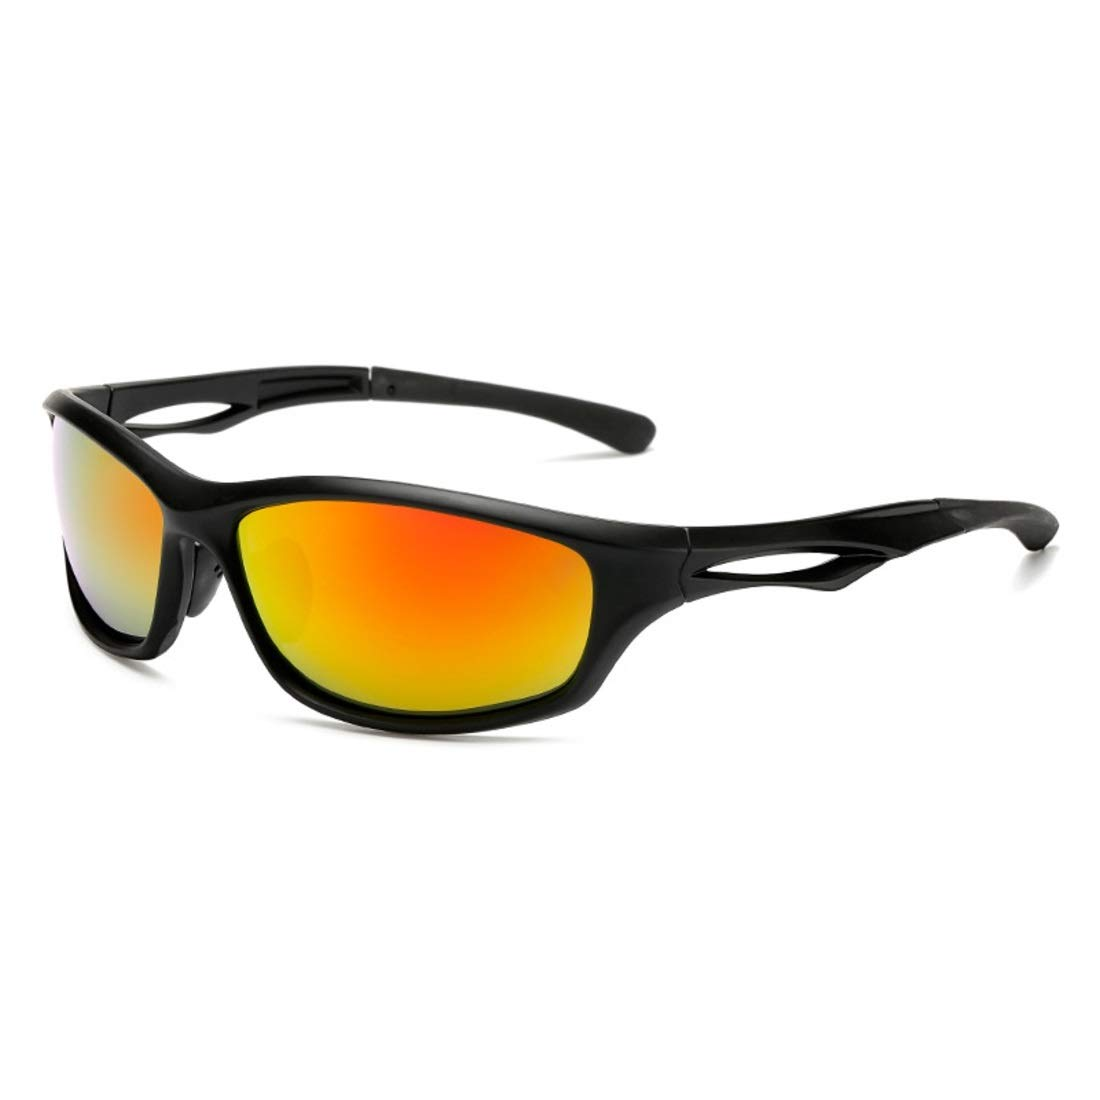 BAOYIT Men and Women Outdoor Cycling Sports Glasses Driving Polarized (Color : A) by BAOYIT